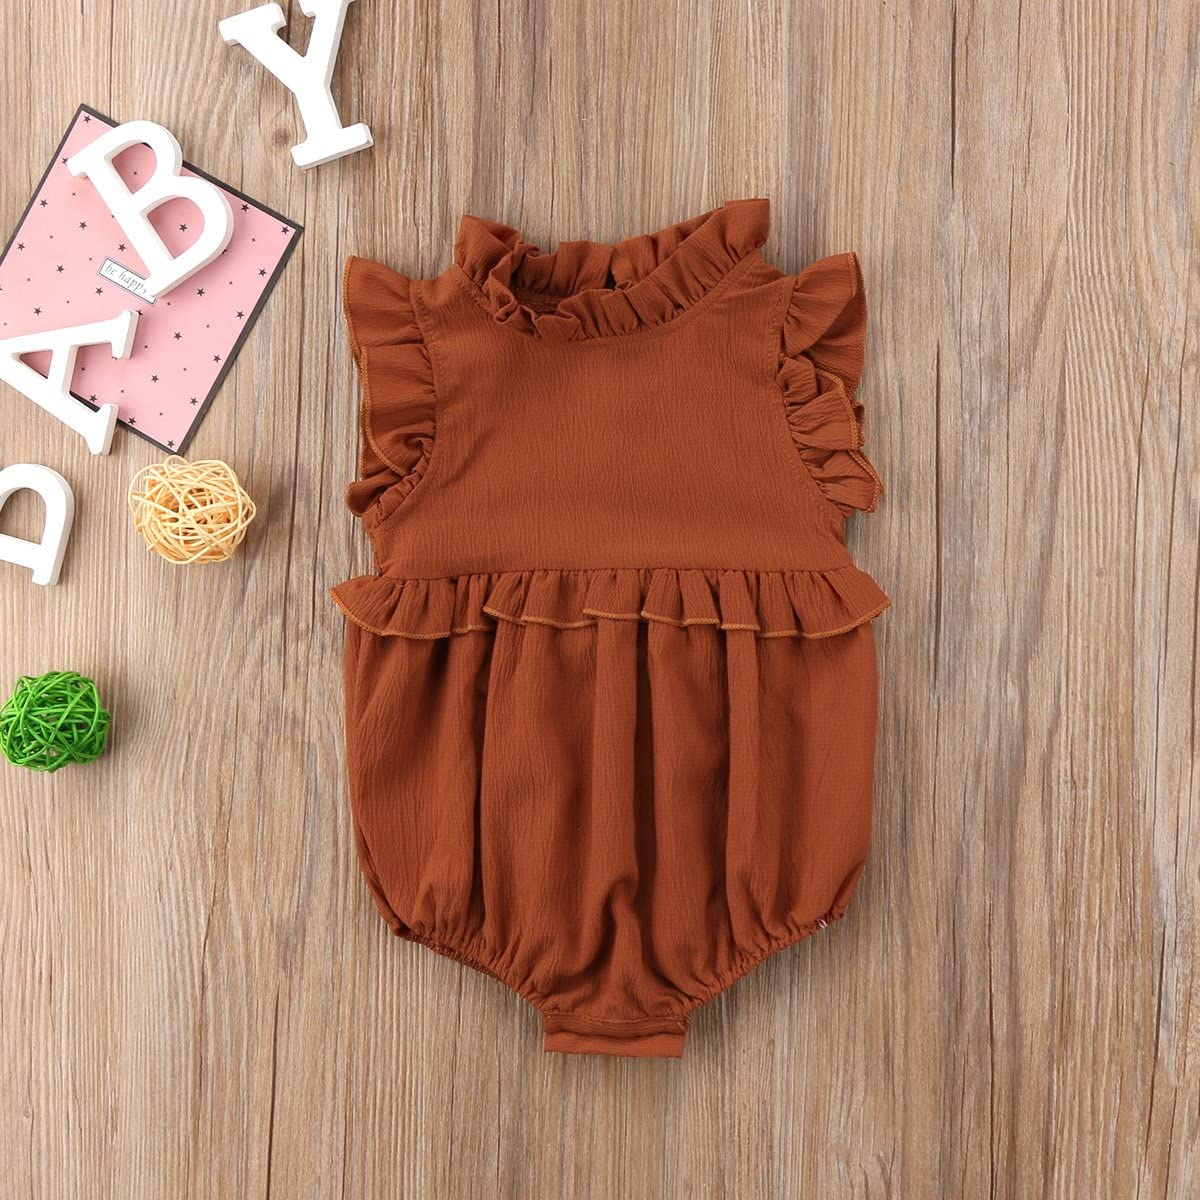 Wide.ling Newborn Rompers Girl Infant Baby Outfit Solid Color Stand Collar Sleeveless Ruffled Bodysuit for 0-24 Months